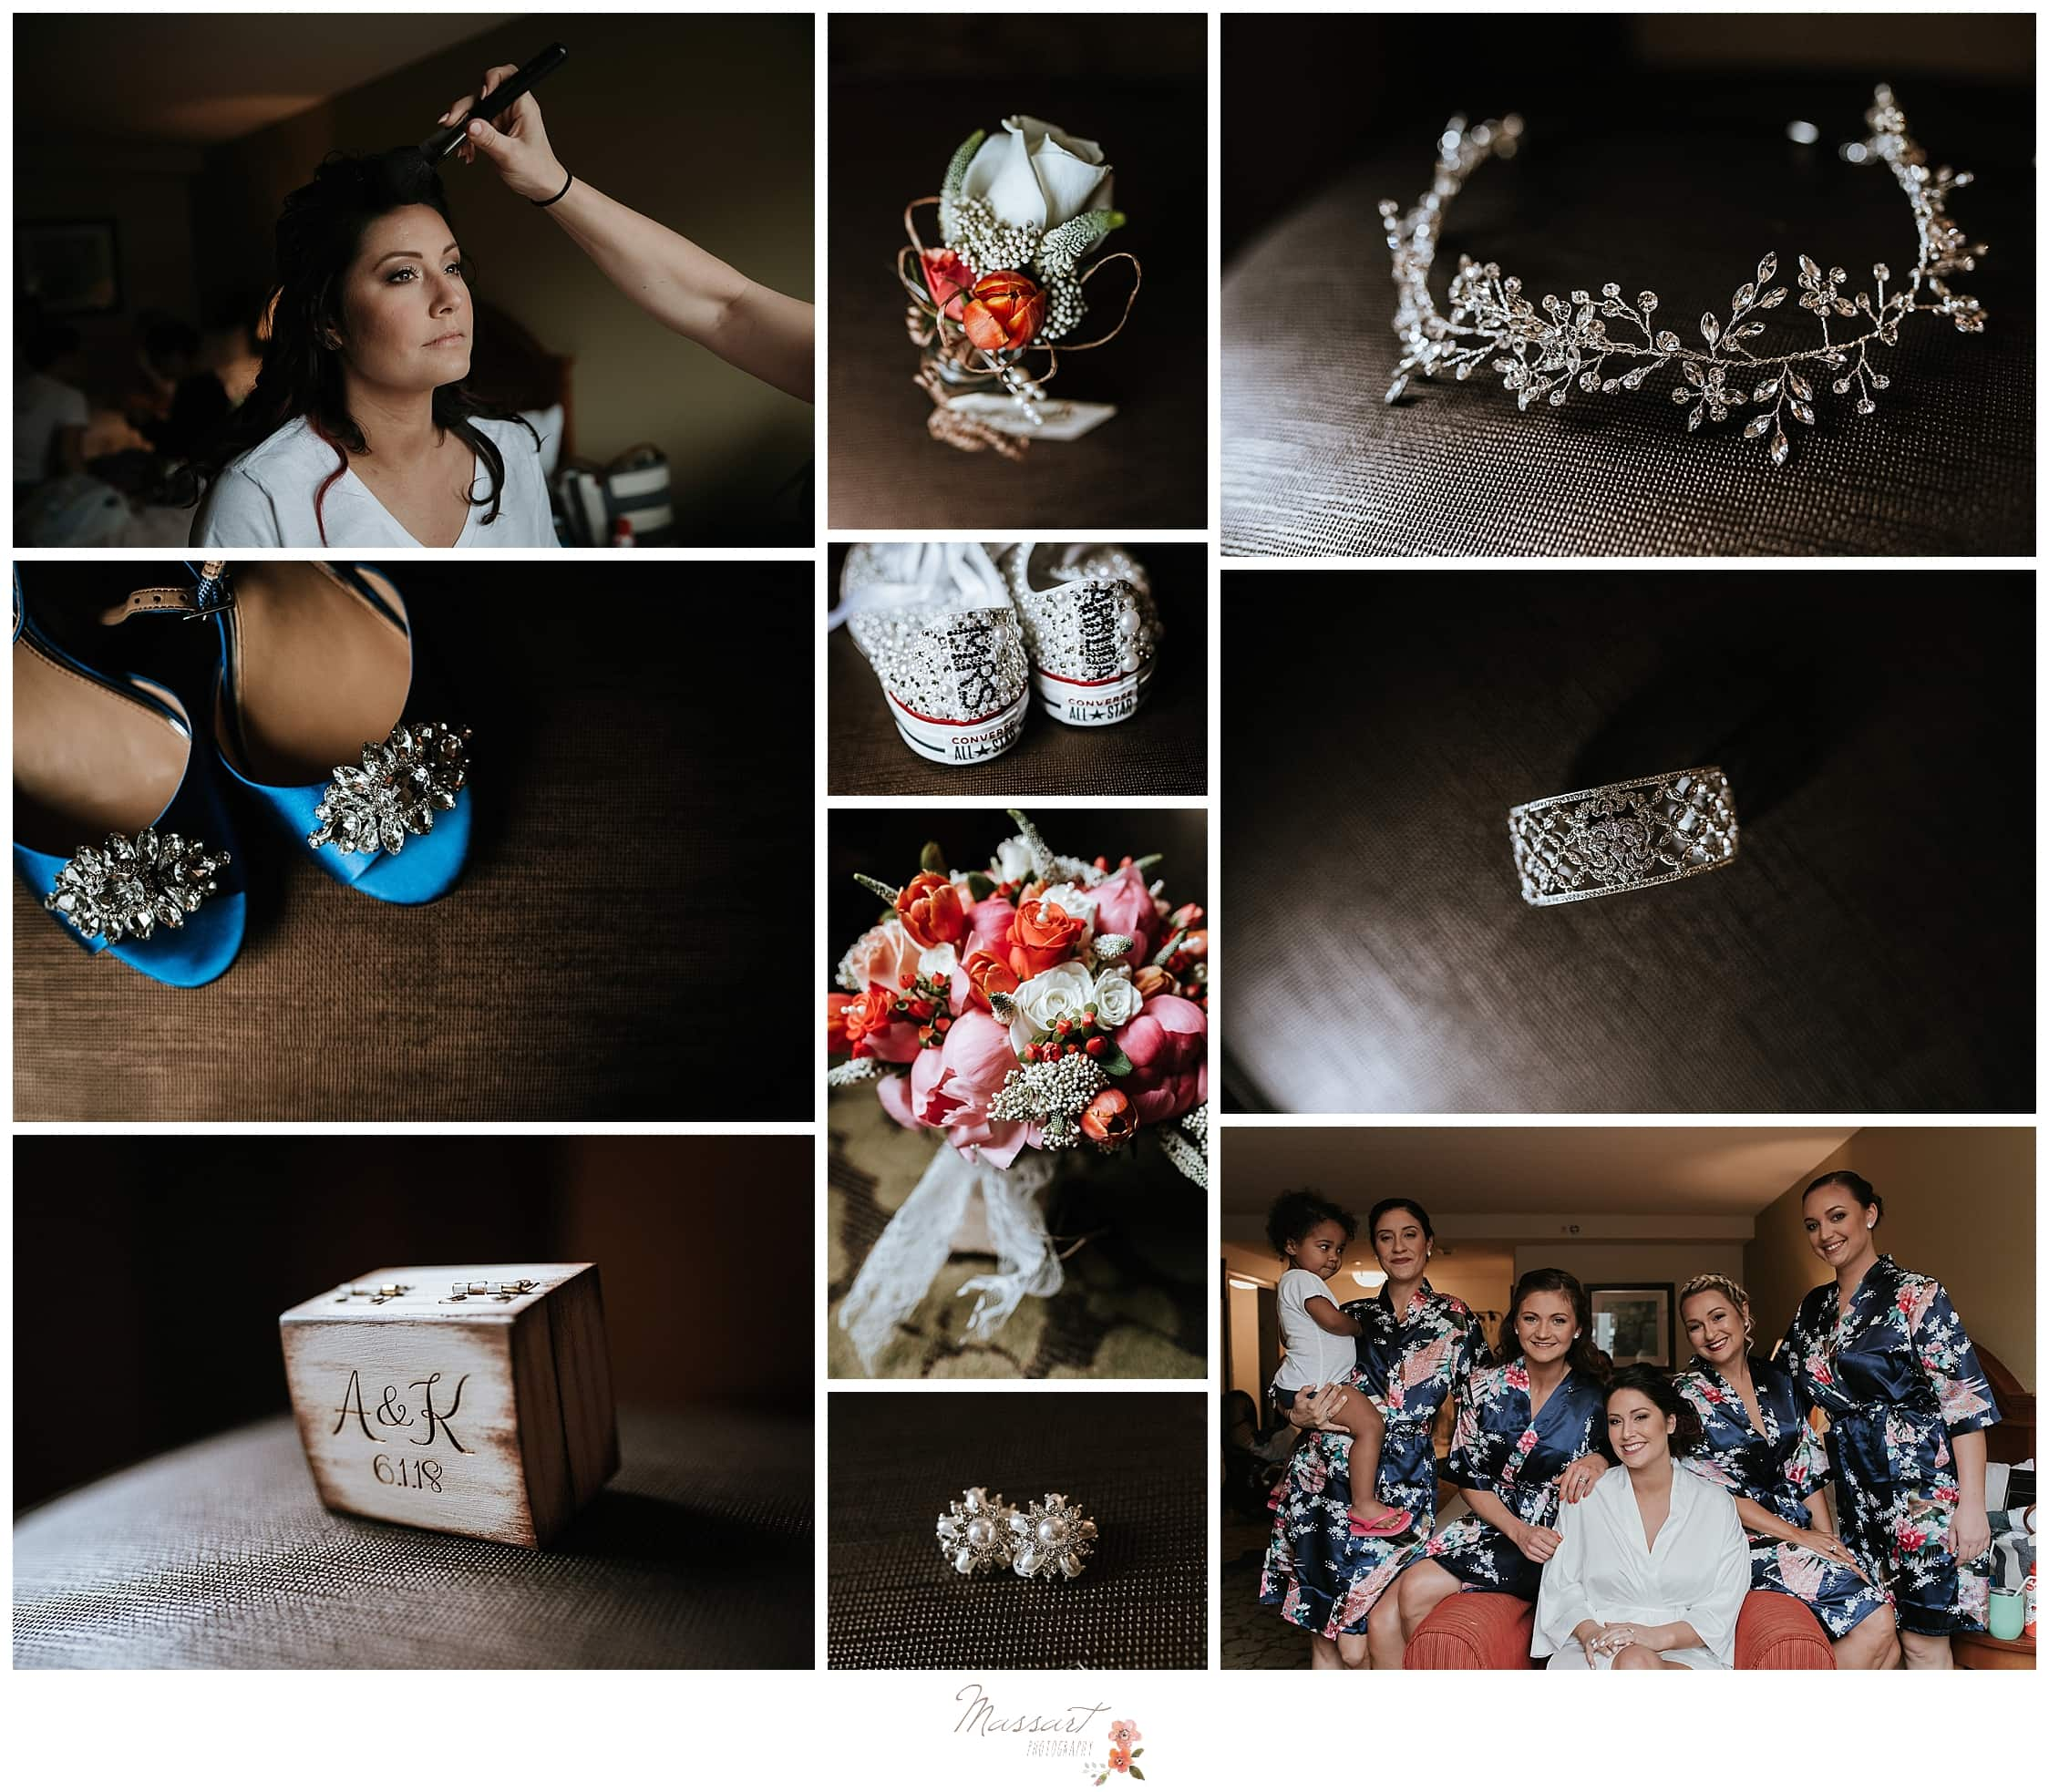 Getting ready details for blue and coral wedding at Harbor Lights RI photographed by CT wedding photographers Massart Photography.